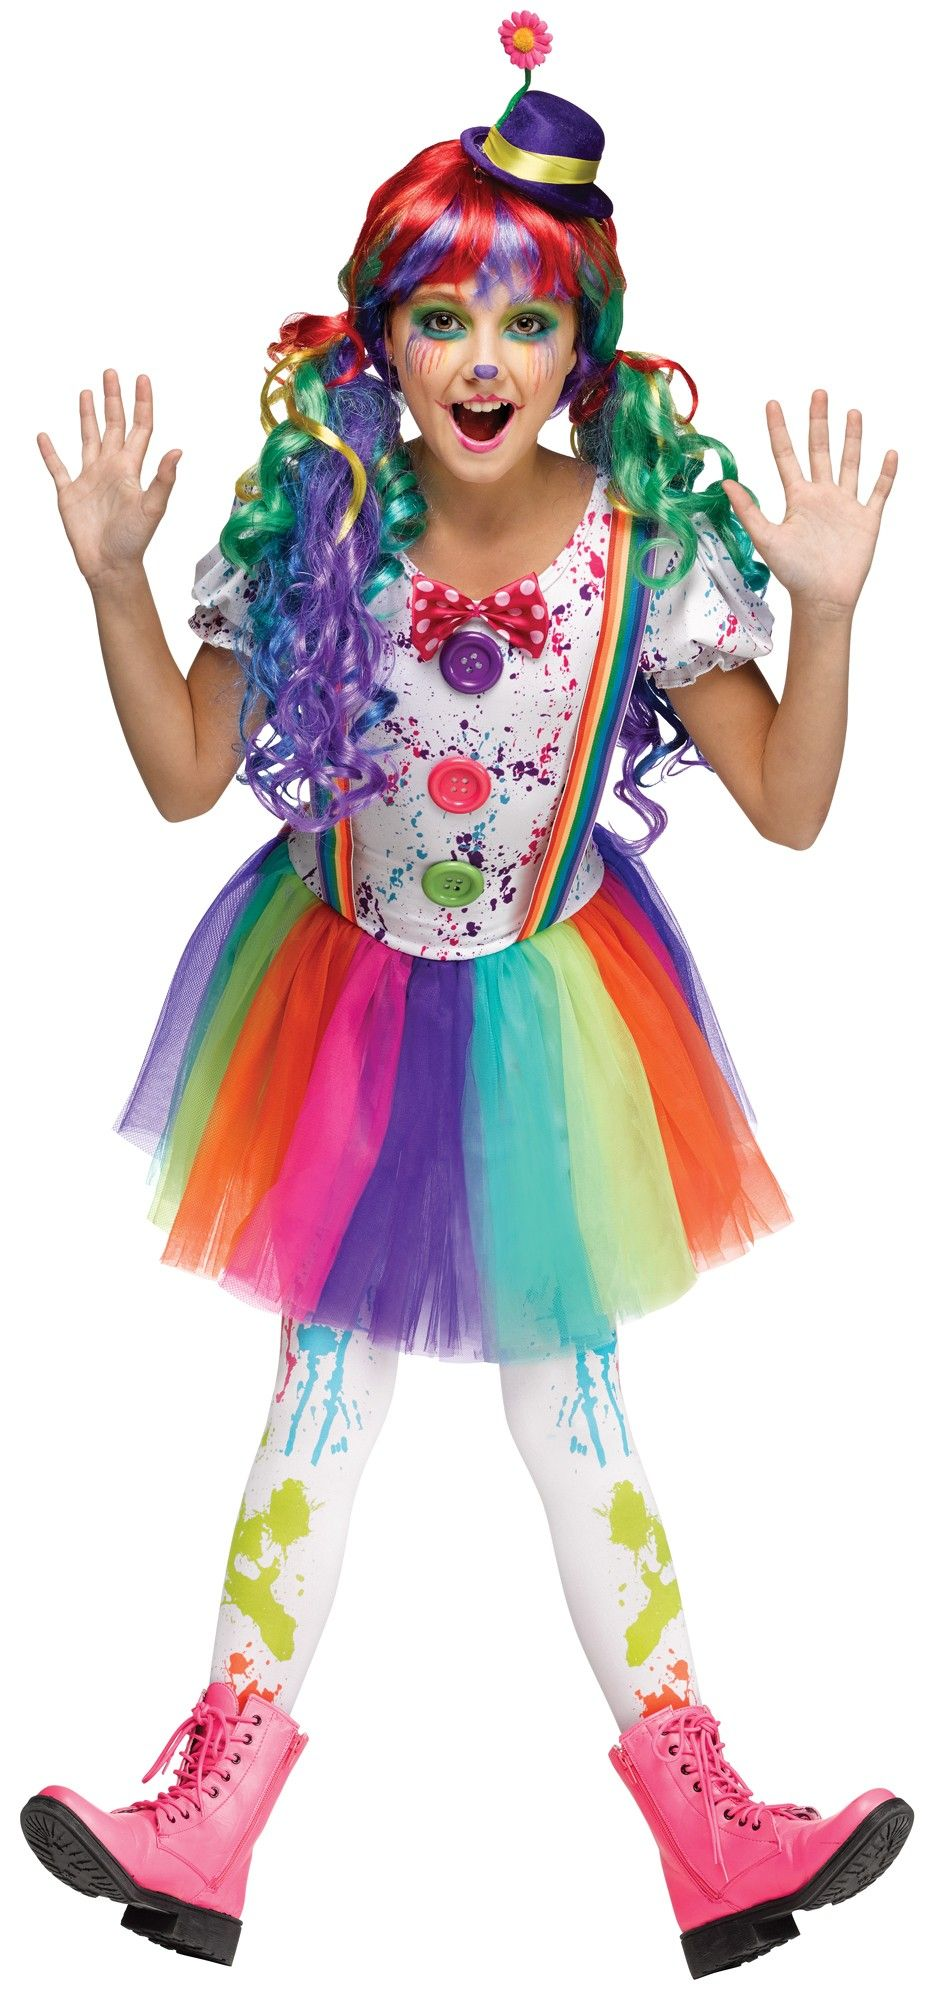 clown girl costume, new for 2015 | 2015 kids costumes | pinterest